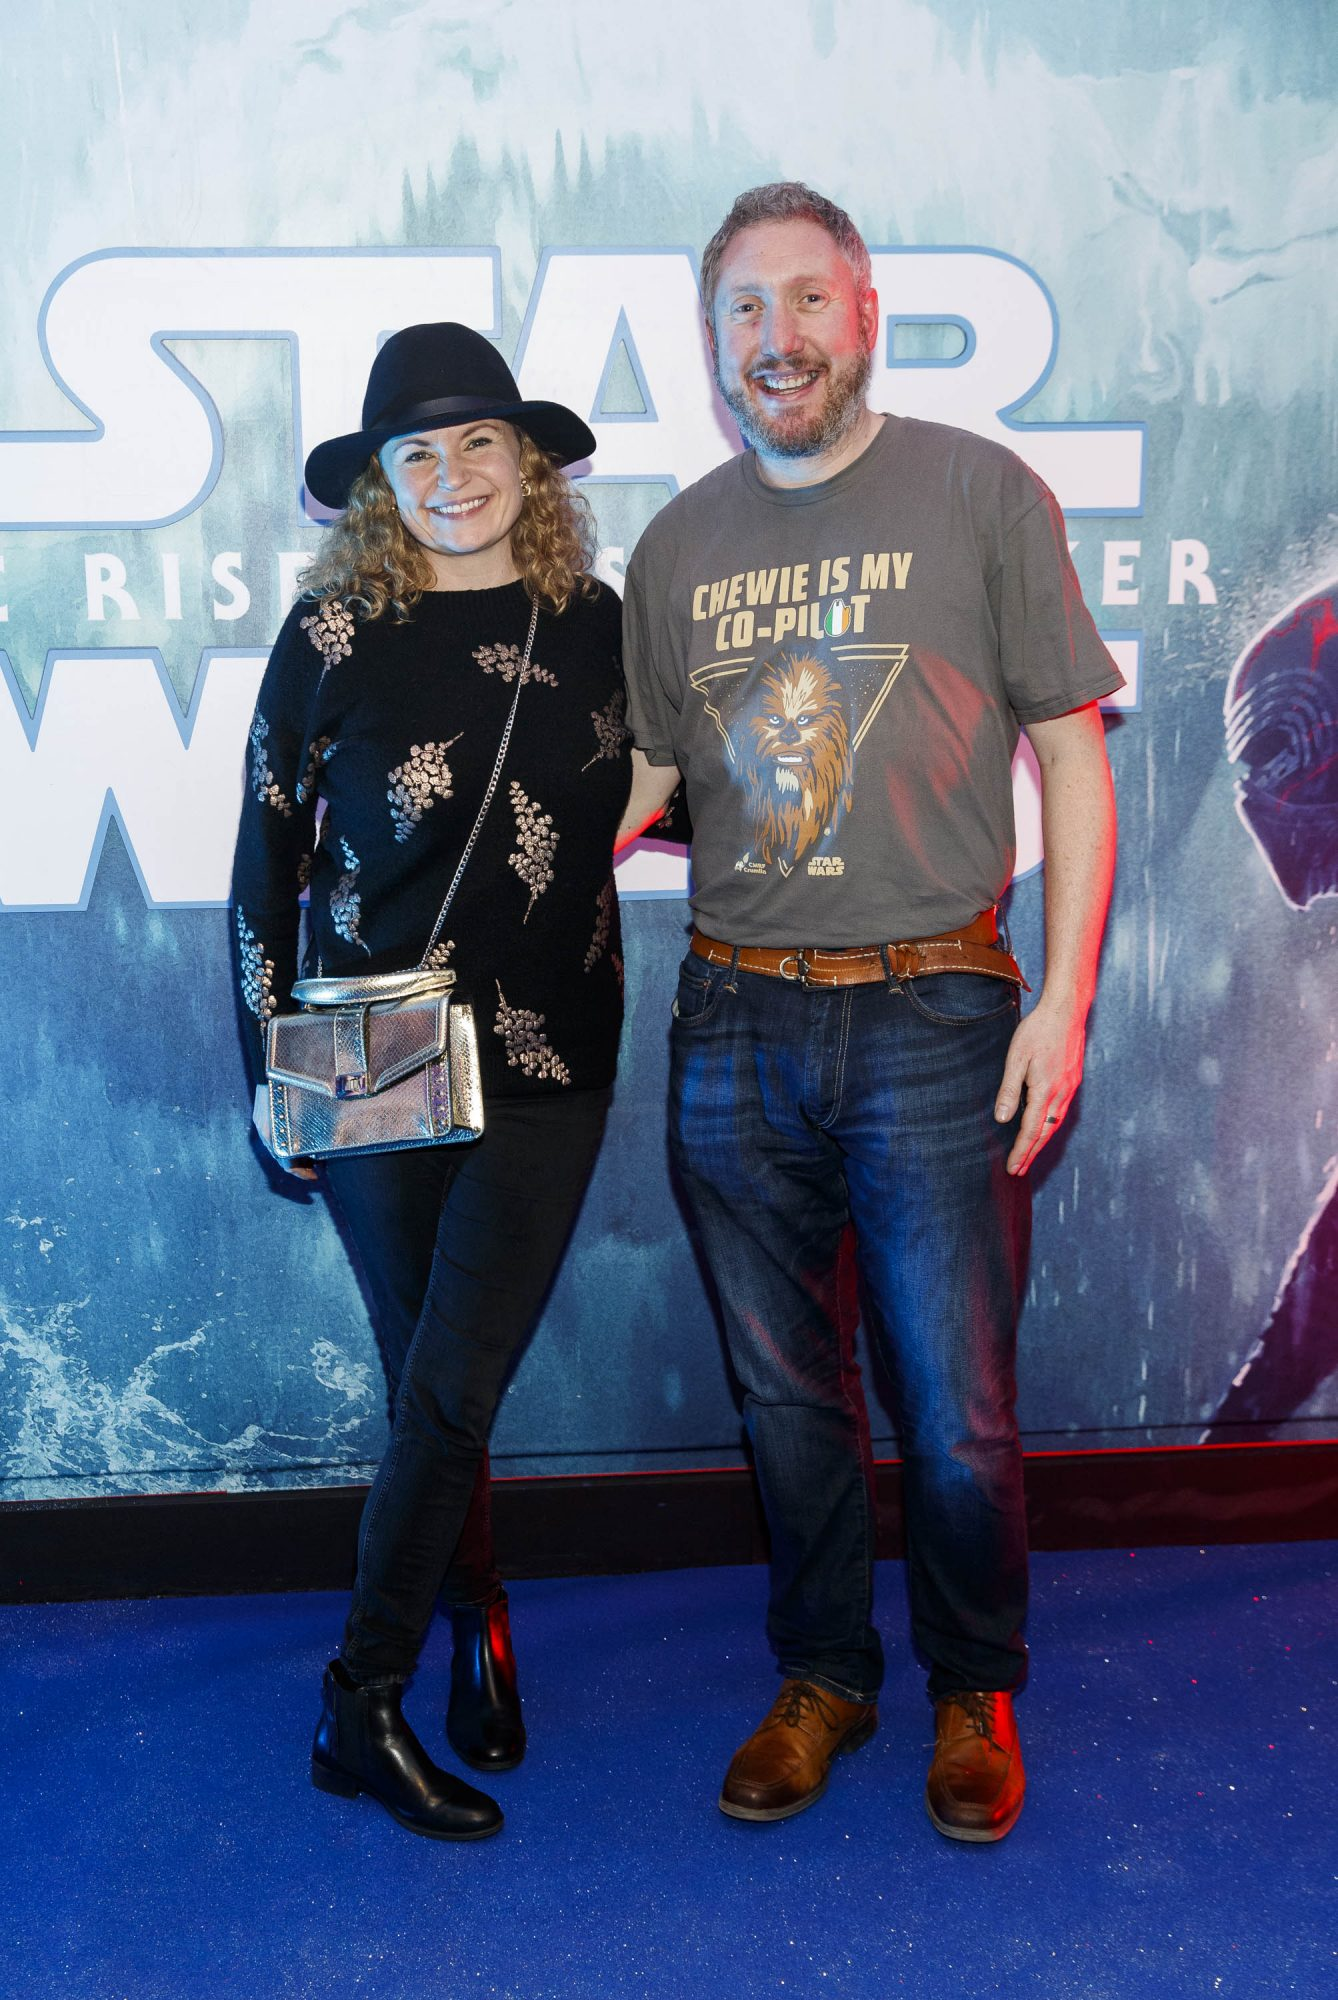 Laura McNaughton and Stephen Carey pictured at the Irish premiere screening of Star Wars: The Rise of Skywalker at Cineworld, Dublin. Picture: Andres Poveda